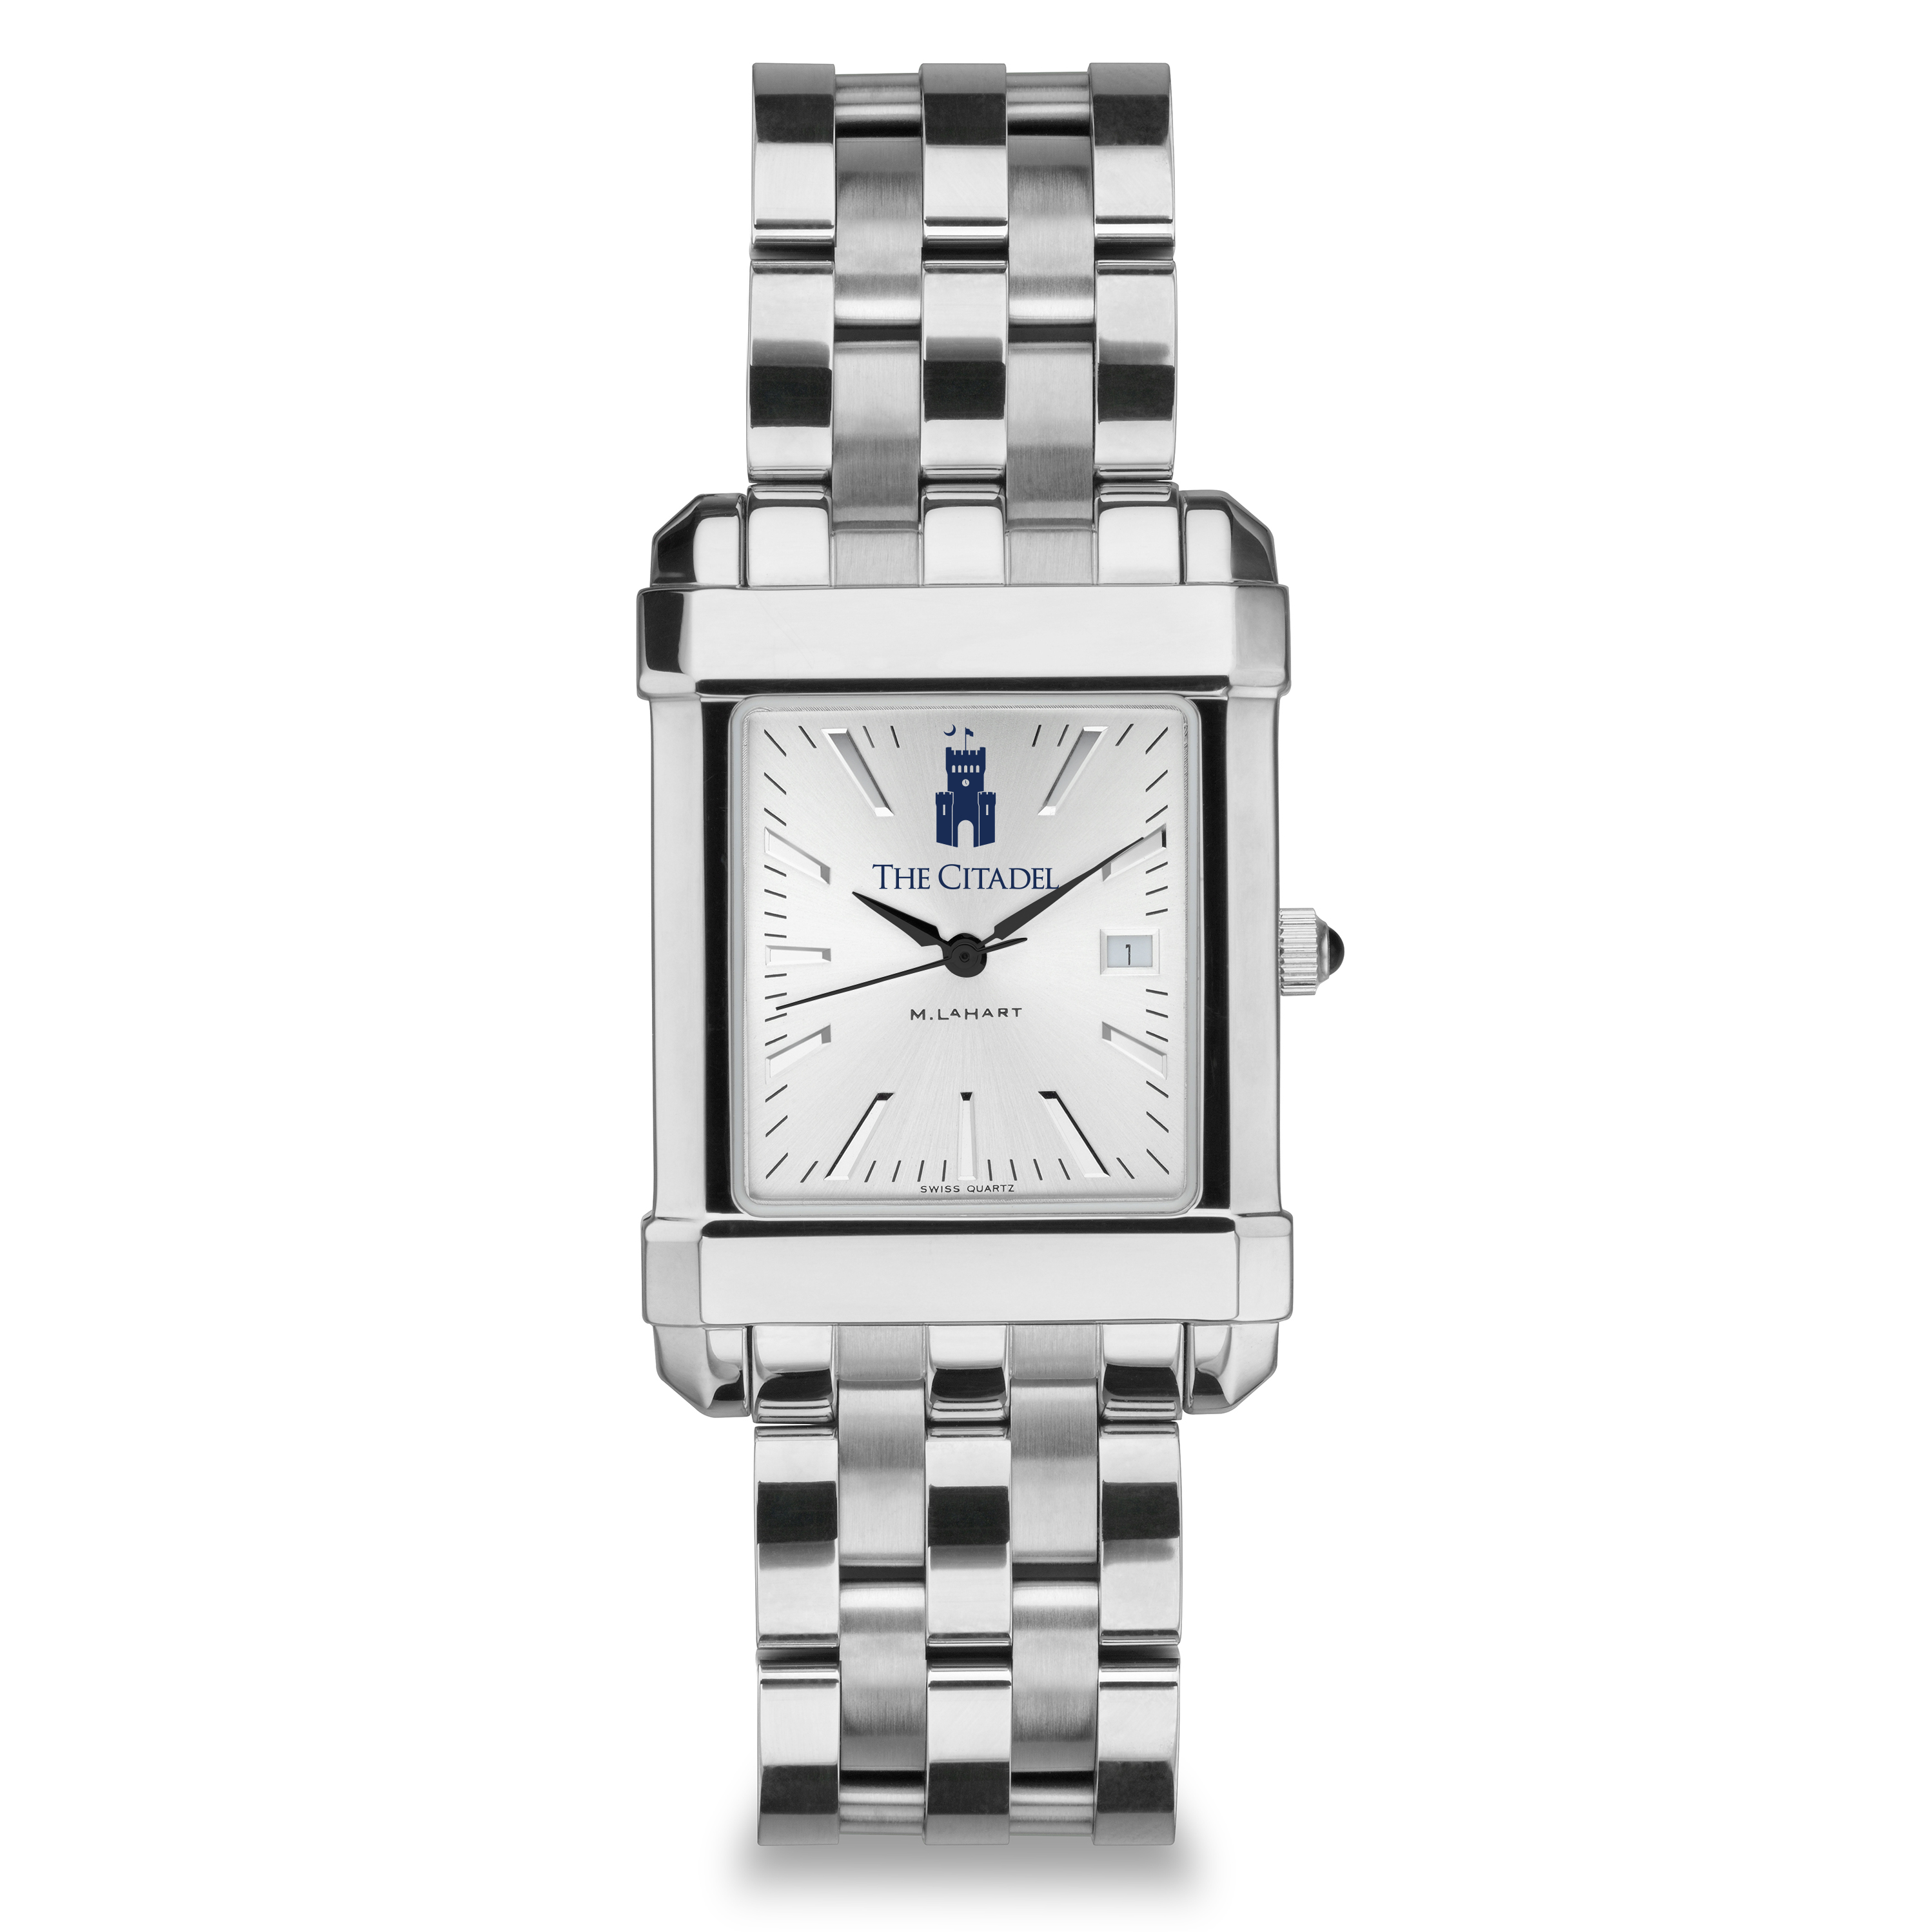 Citadel Men's Collegiate Watch w/ Bracelet - Image 2